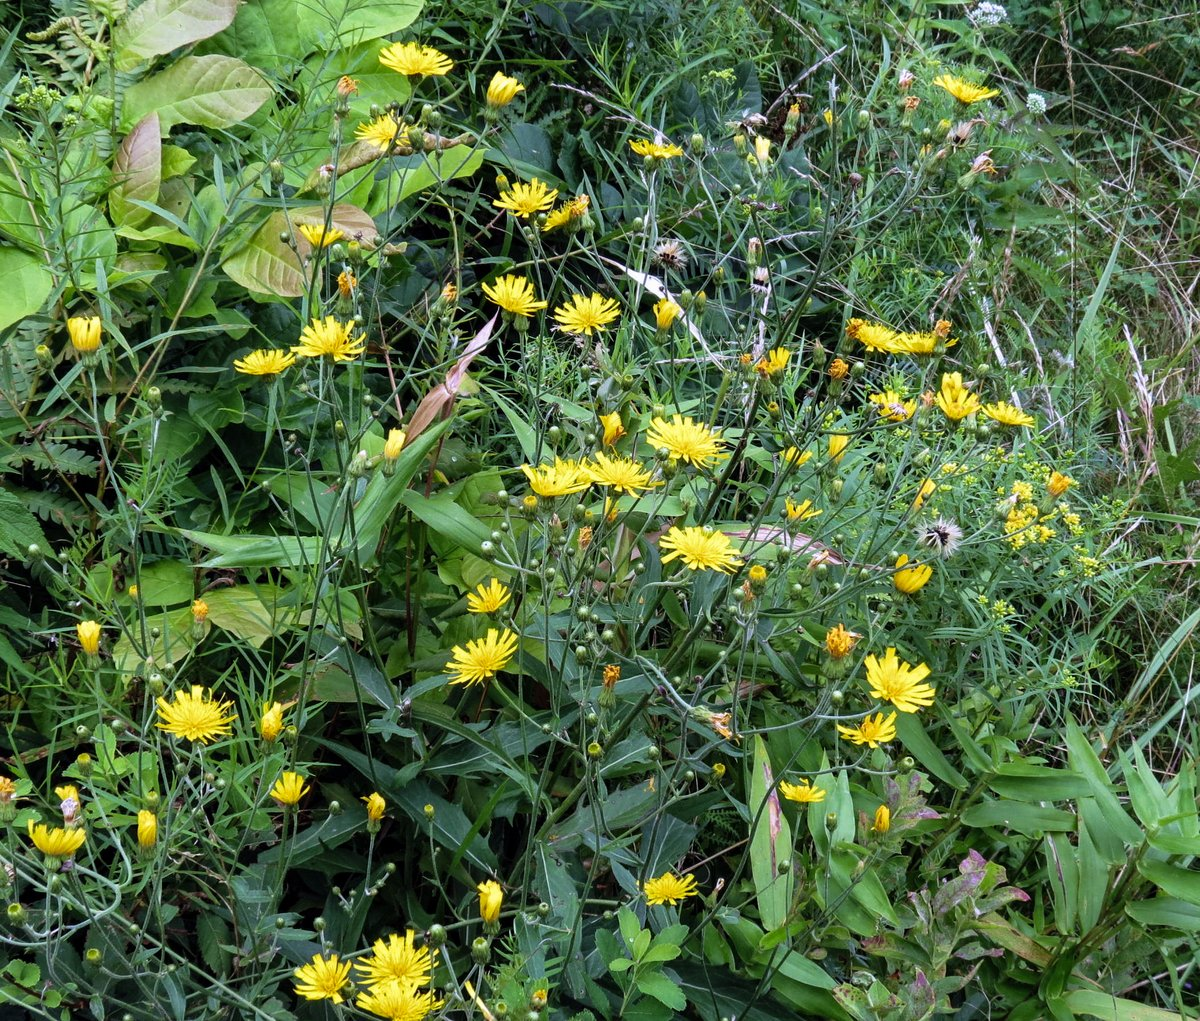 More mid august flowers new hampshire garden solutions panicled hawkweed hieracium paniculatum has wiry stems that curve in all directions and end in a small yellow daisy like flower izmirmasajfo